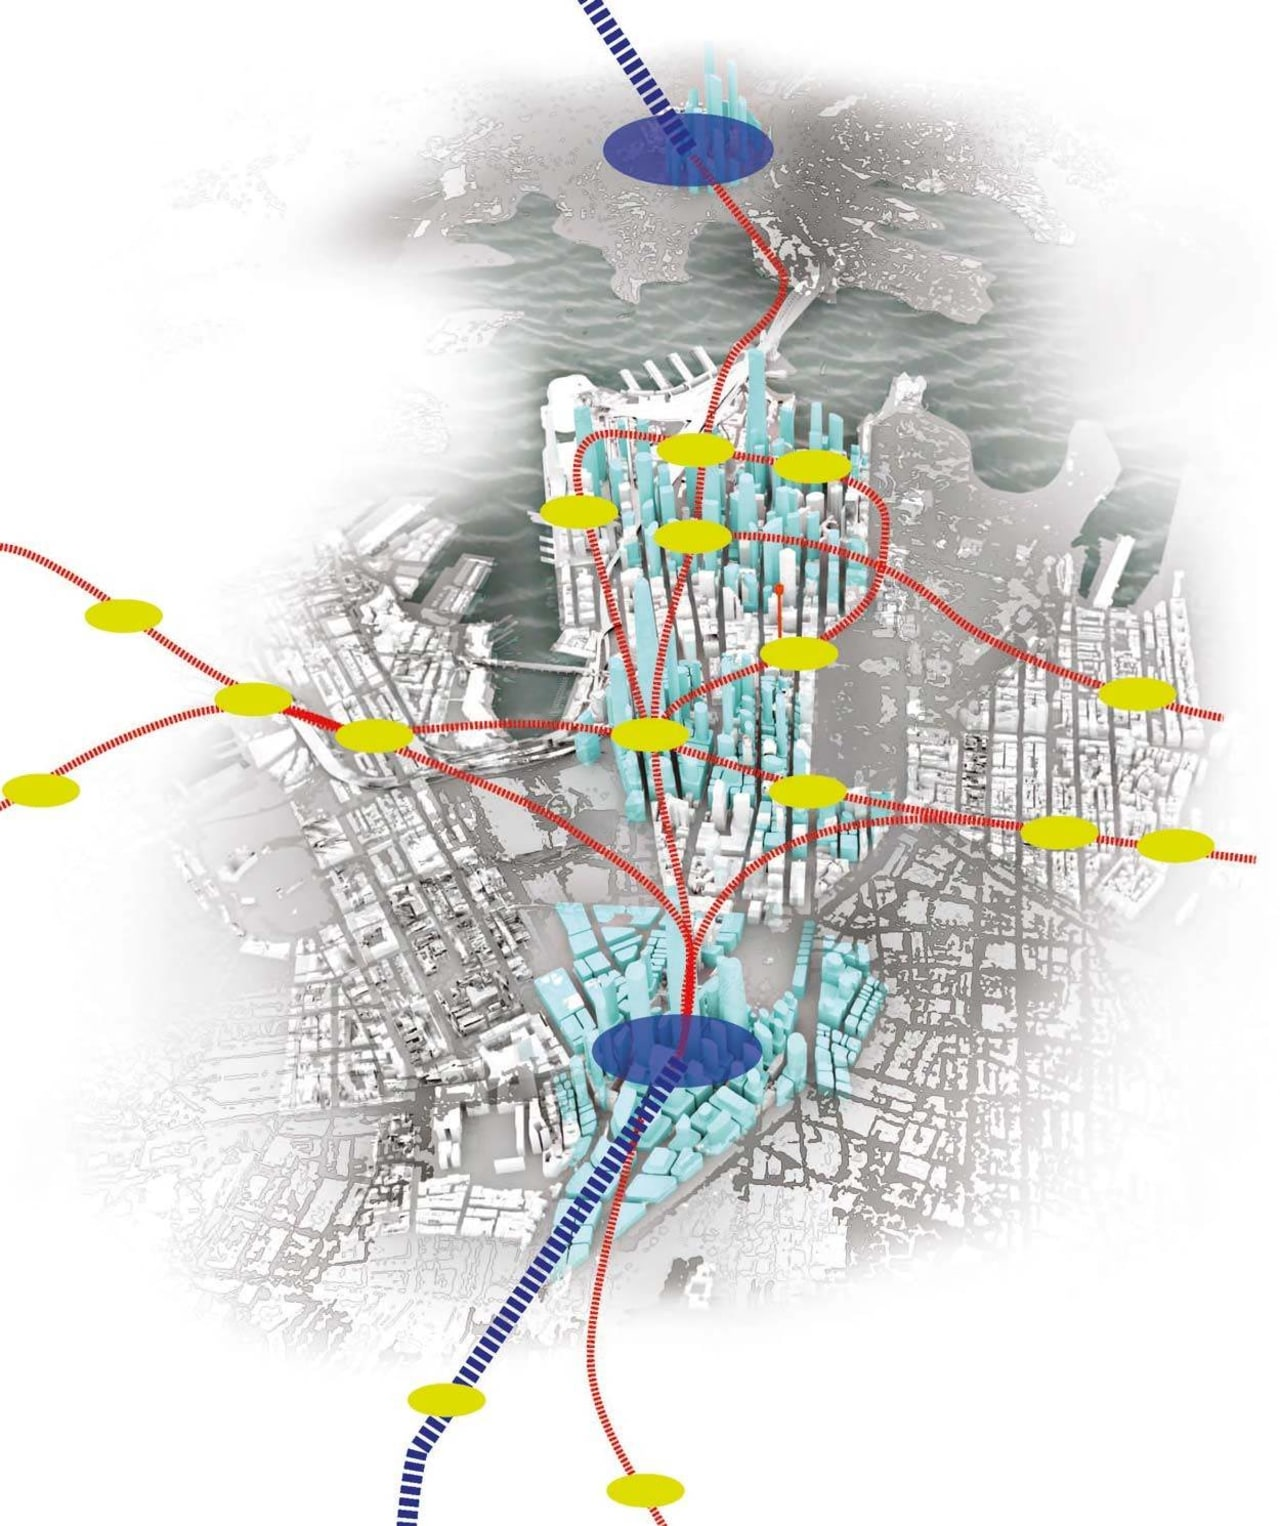 Sydney in 2050 – Travel routes and metro graphic design, line, map, tree, white